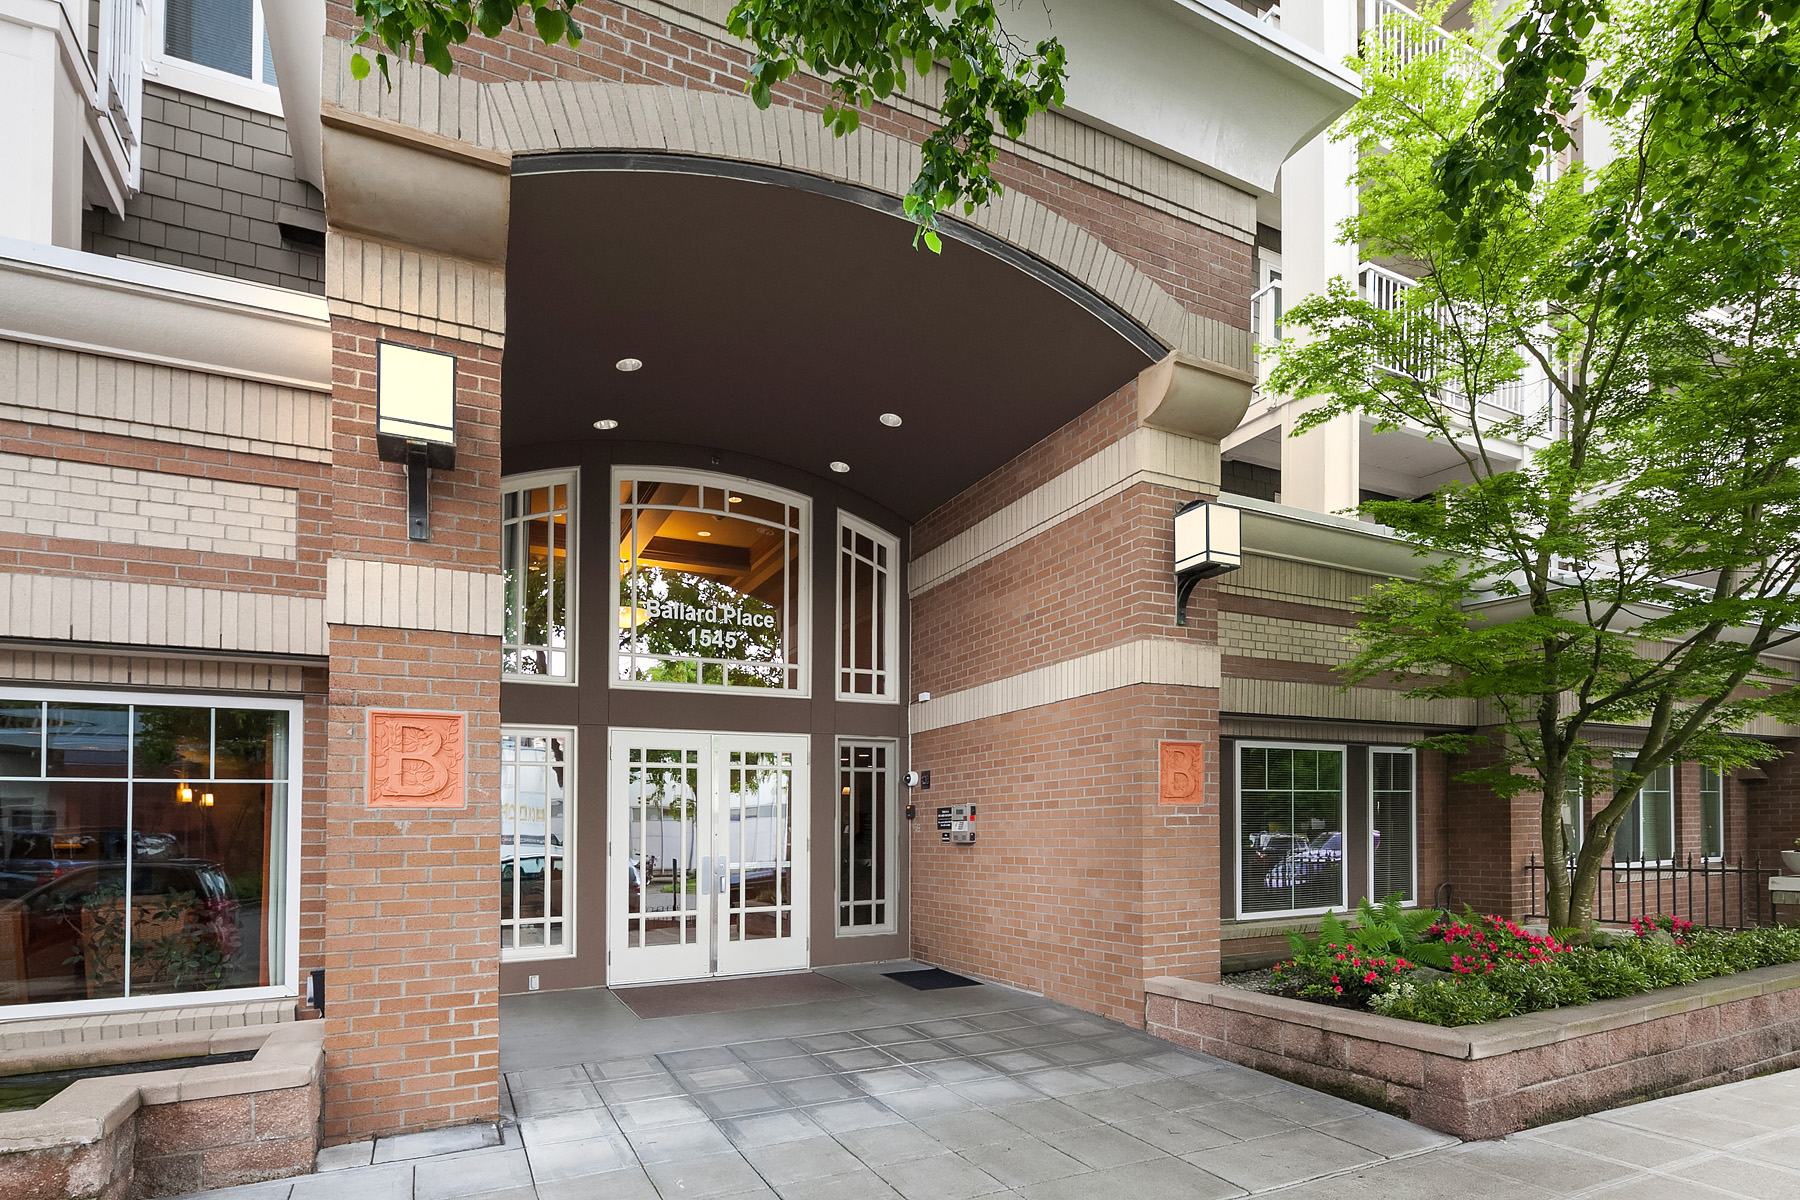 Condominium for Sale at Ballard Place 1545 NW 57th St #319 Seattle, Washington 98107 United States